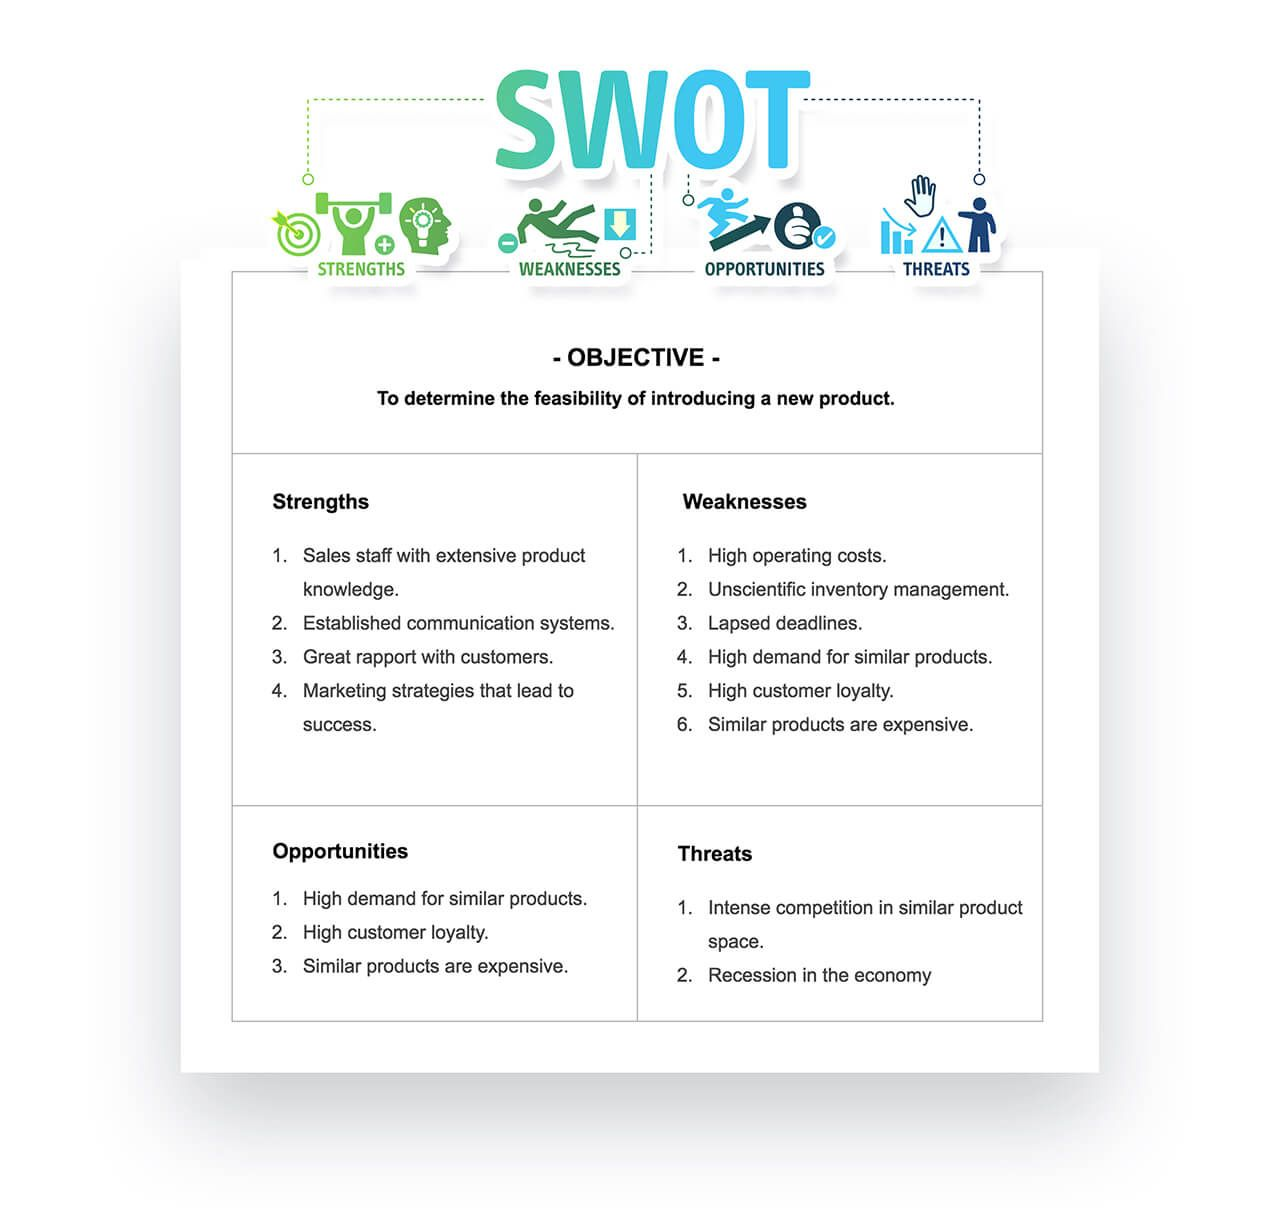 What Is Swot Analysis Swot Analysis Example With A Free Template Meetnotes Swot Analysis Examples Swot Analysis Swot Analysis Template